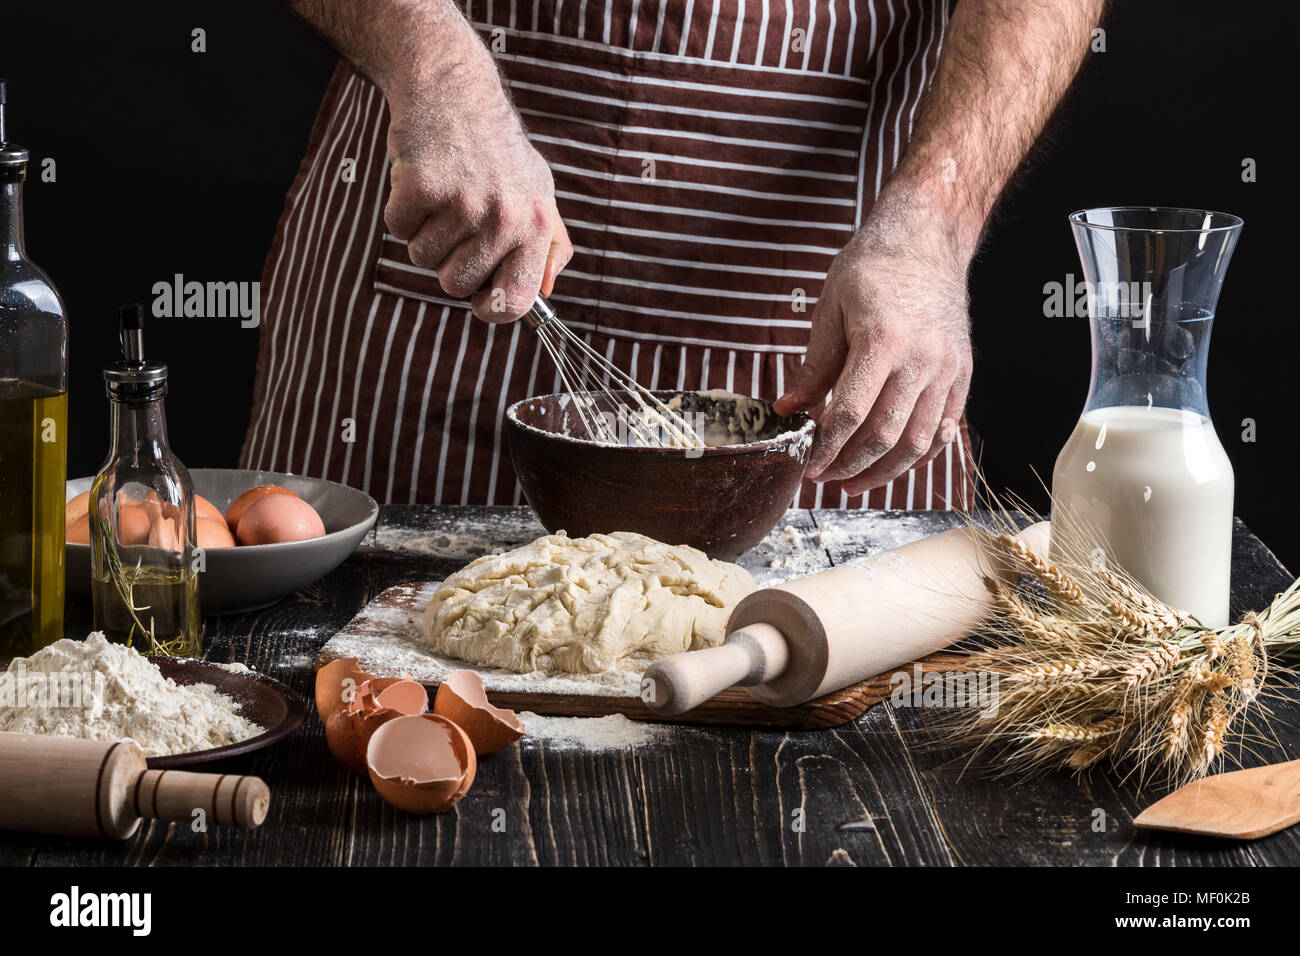 Male chef whipping eggs in the bakery on wooden table. Ingredients for cooking flour products or dough - Stock Image